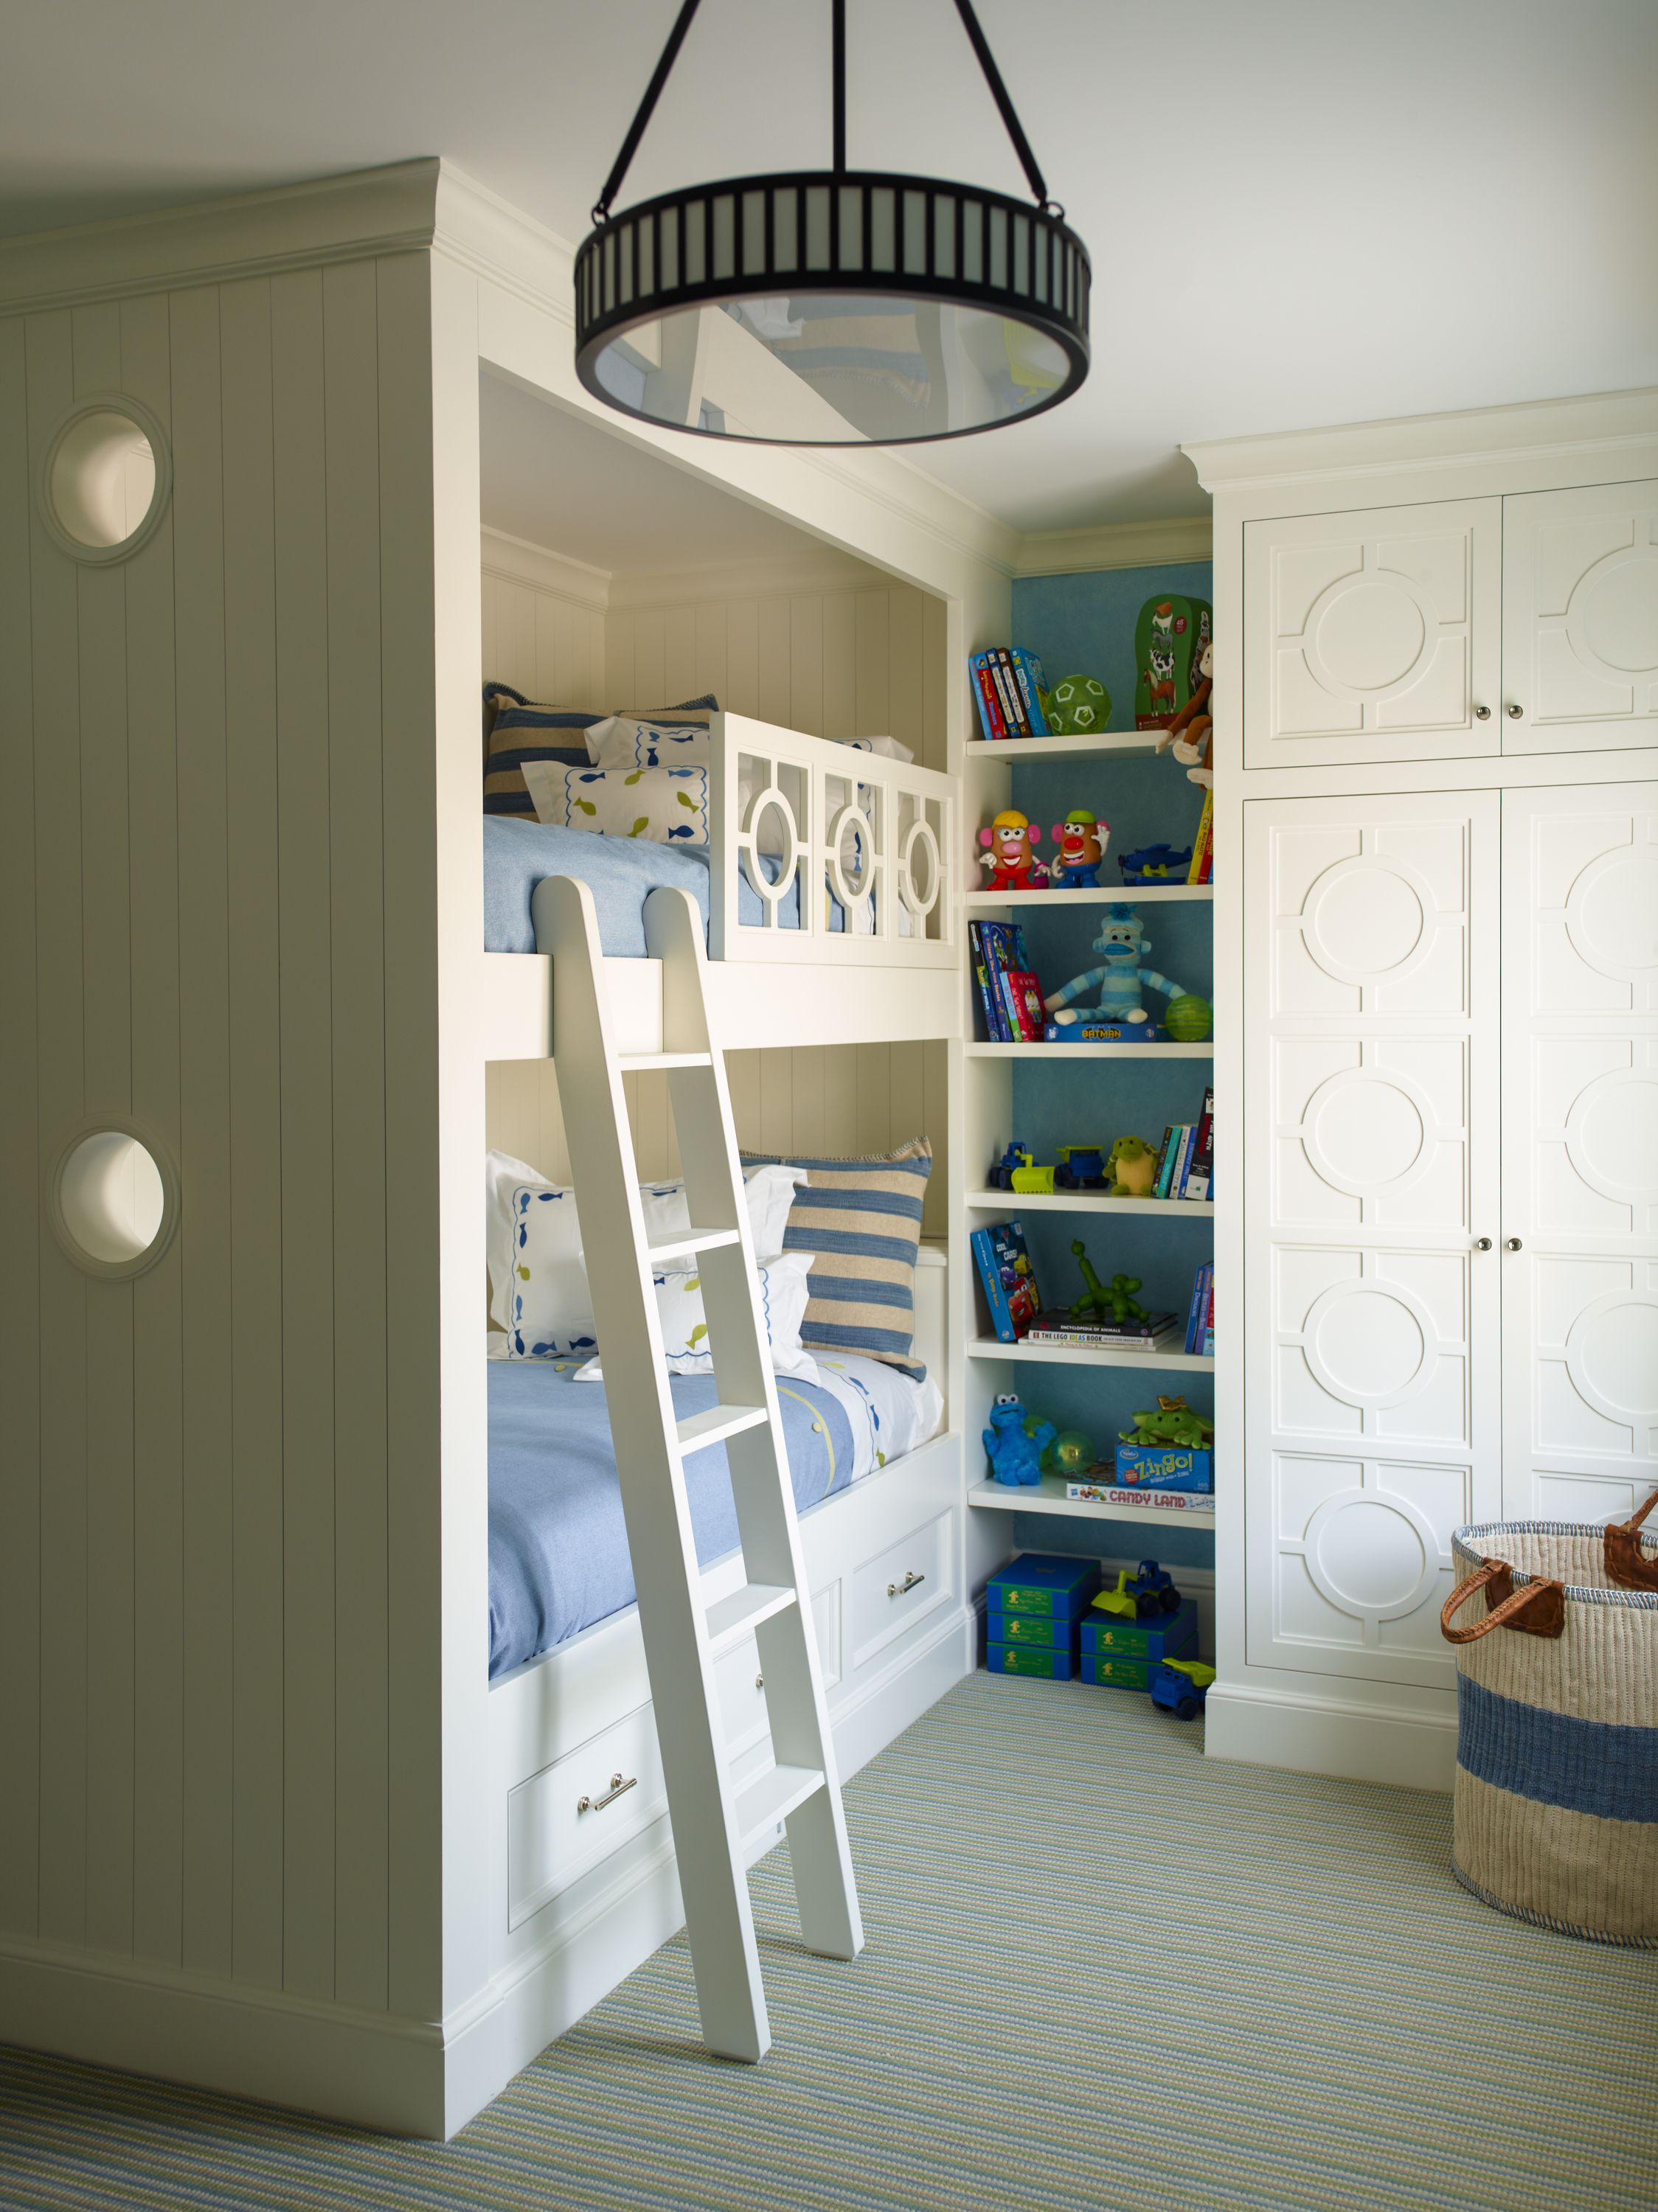 Loft bed with slide building plans  In order for kidsu rooms to always look tidy ensure an easy cleanup